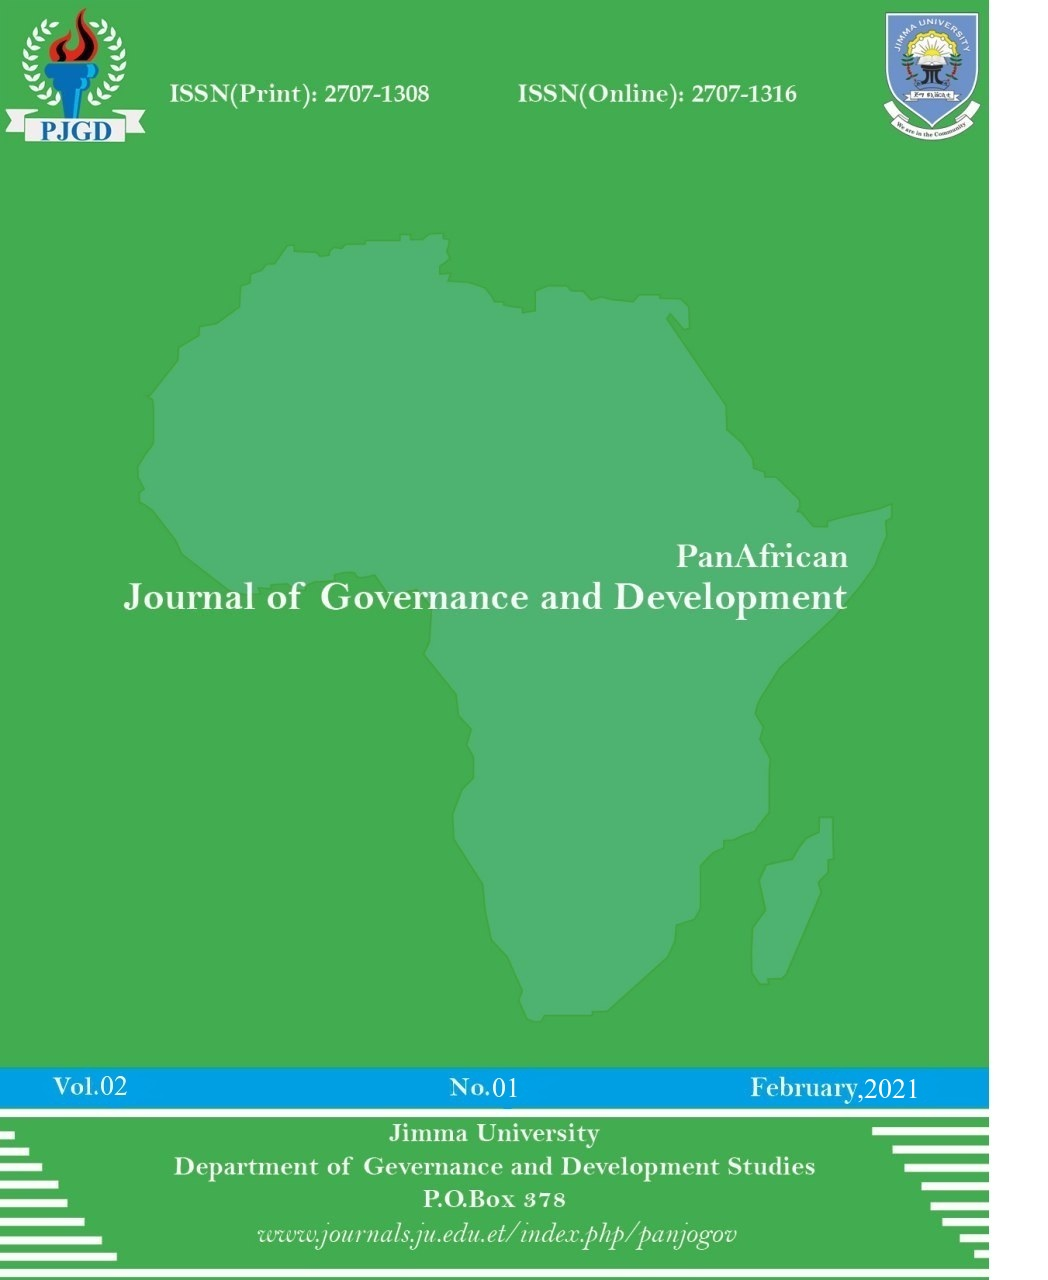 PanAfrican Journal of Governance and Development (PJGD) - Cover Page